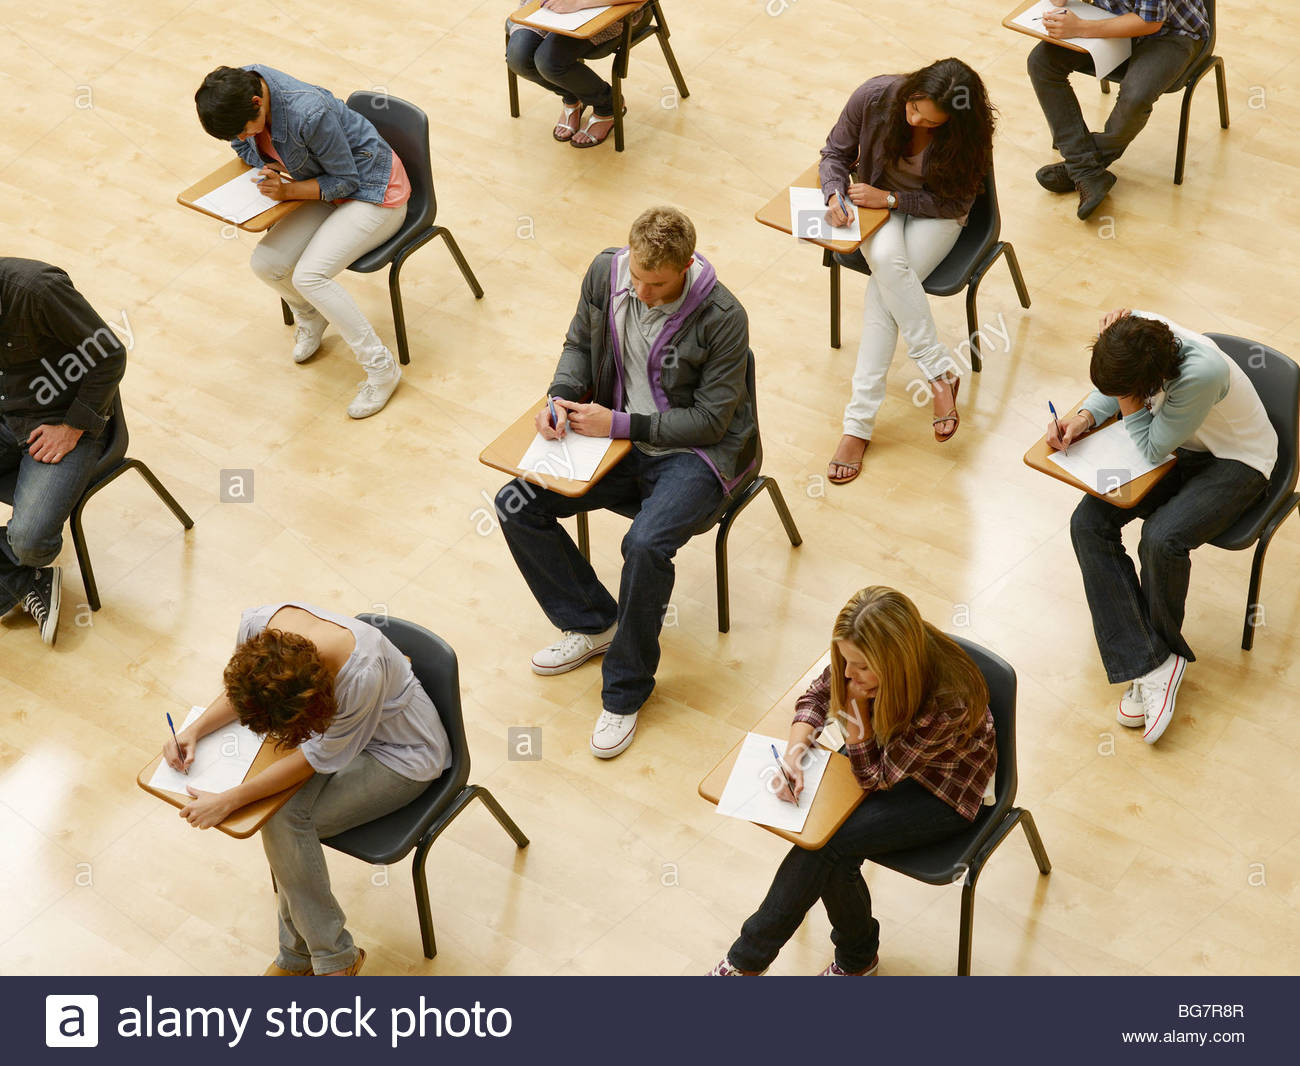 College students taking test in classroom Photo Stock